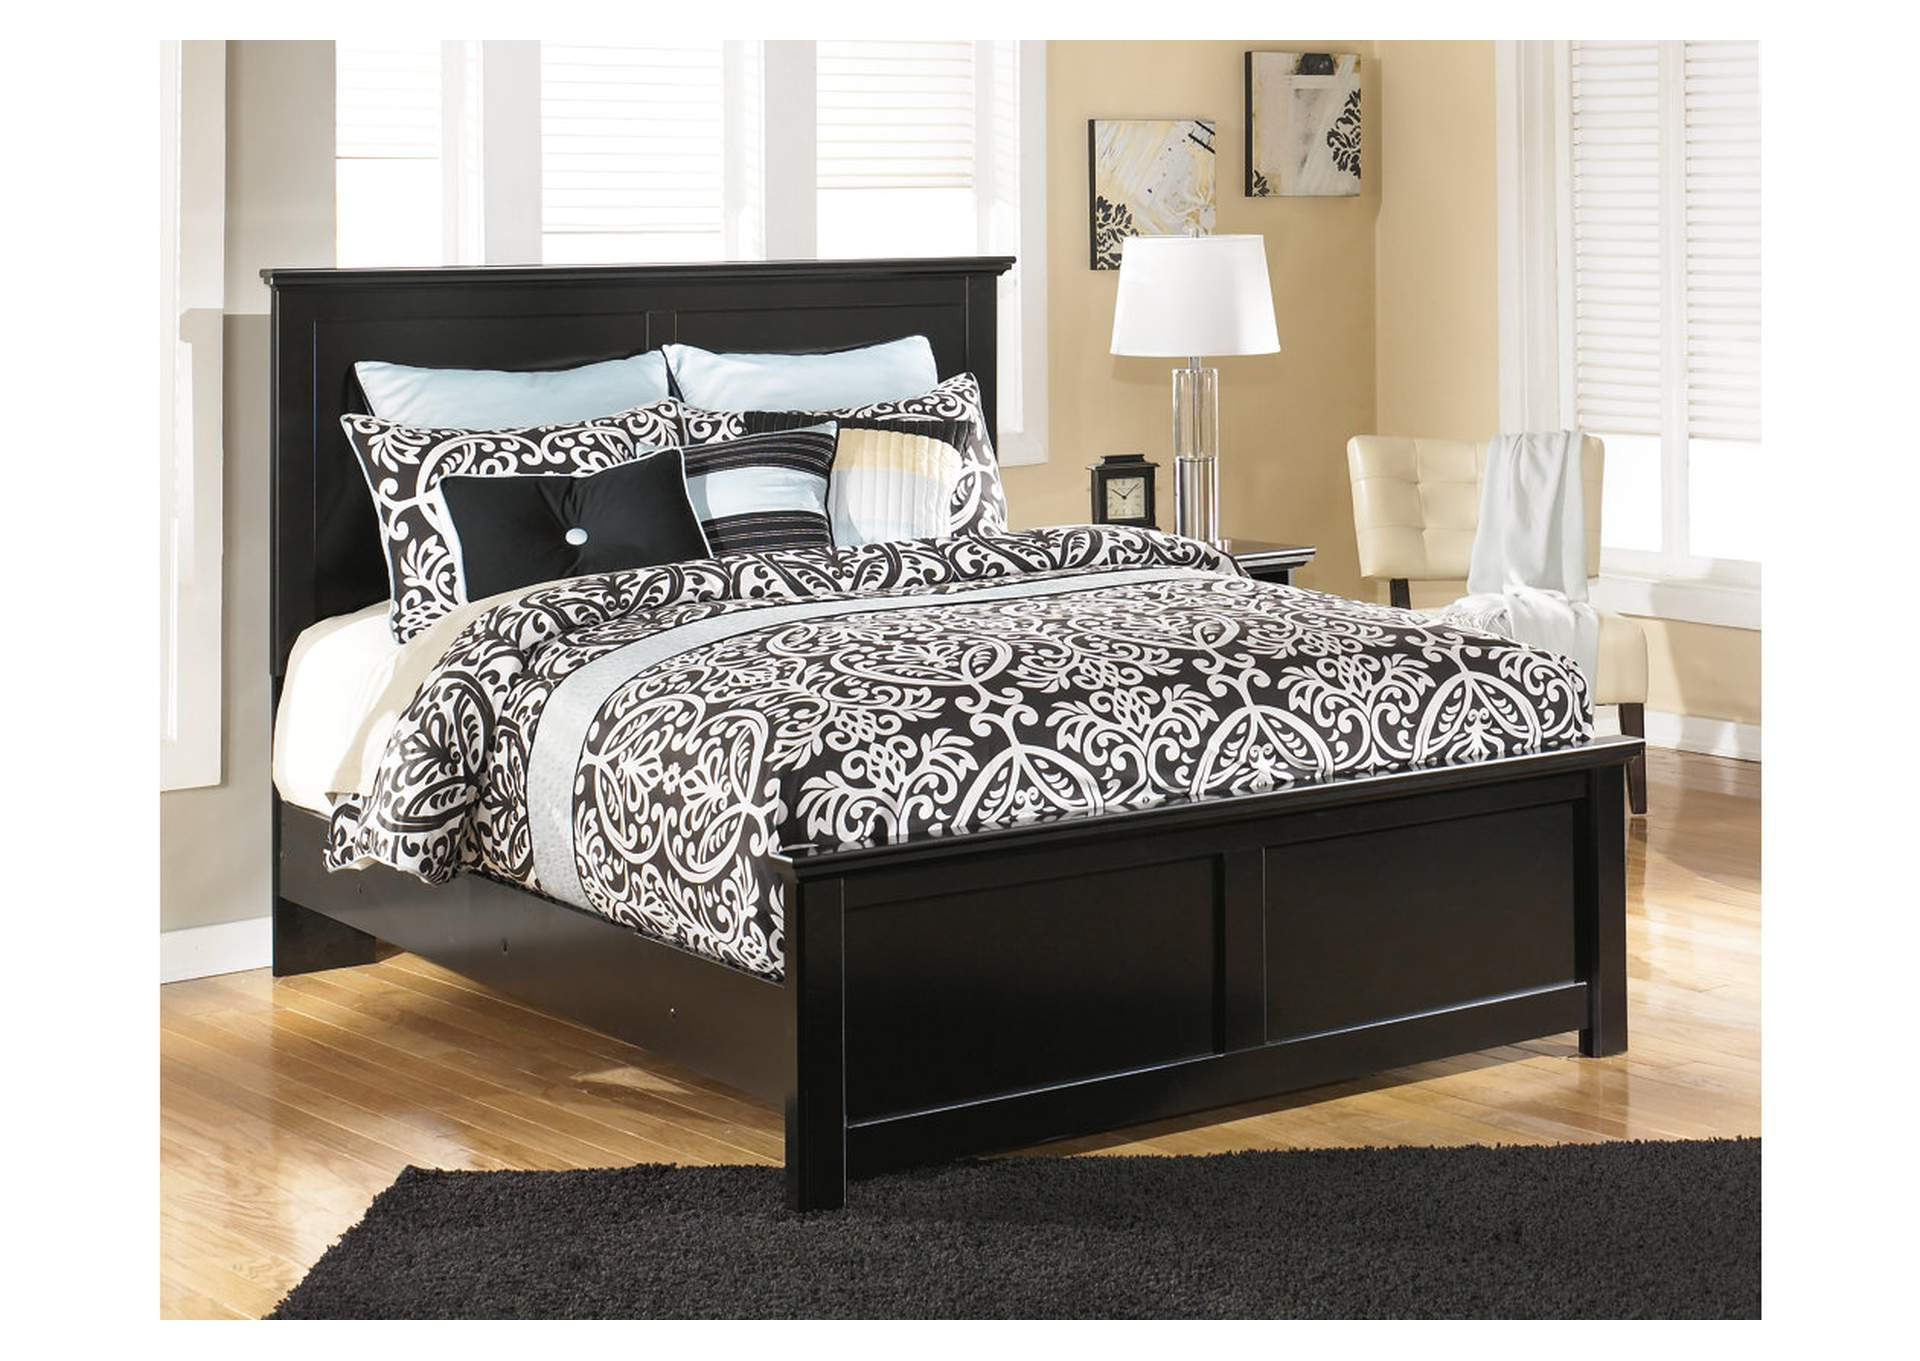 Maribel King Panel Bed,Signature Design by Ashley